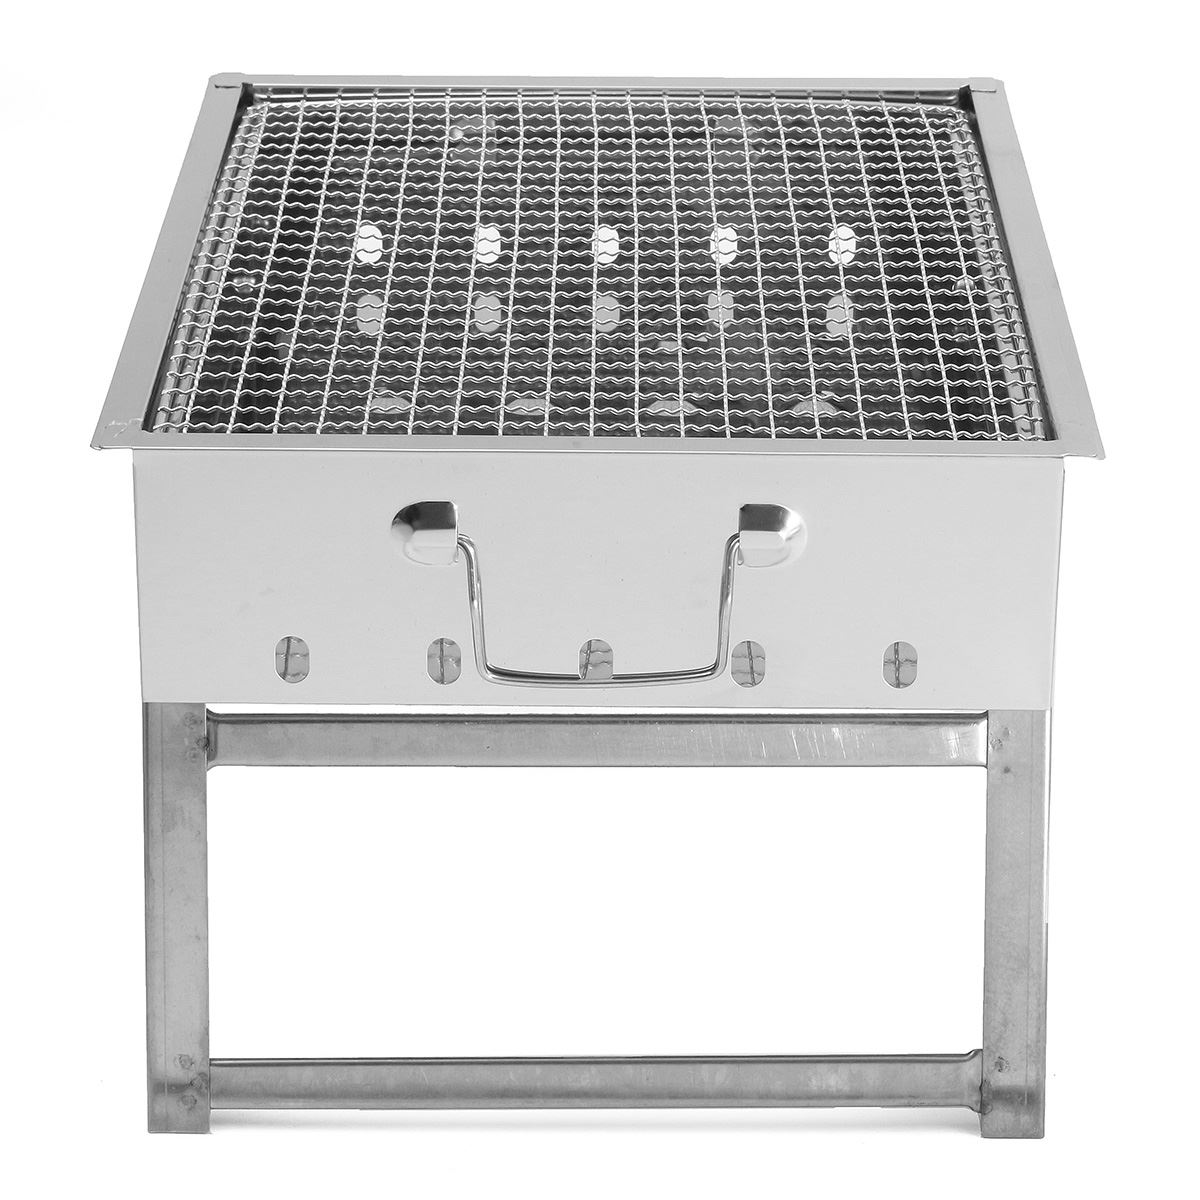 Portable Stainless Steel Grill Stove Rack Pan Roaster Outdoor ...